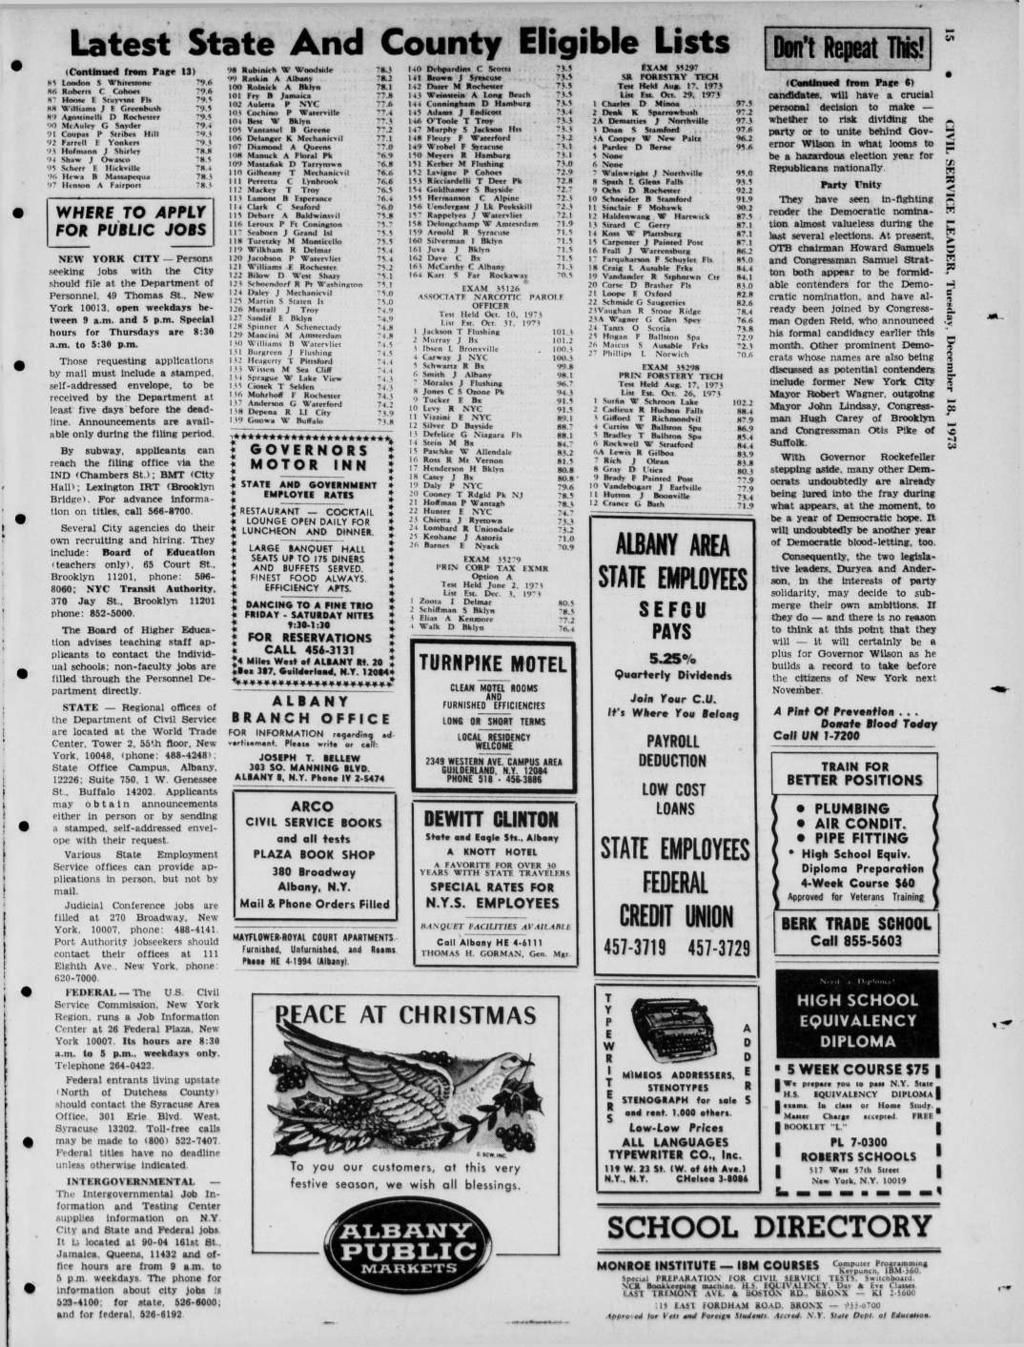 To install li region officers this month pdf latest state ad coty eligible lists cotied from page 13 h lodo s fandeluxe Image collections